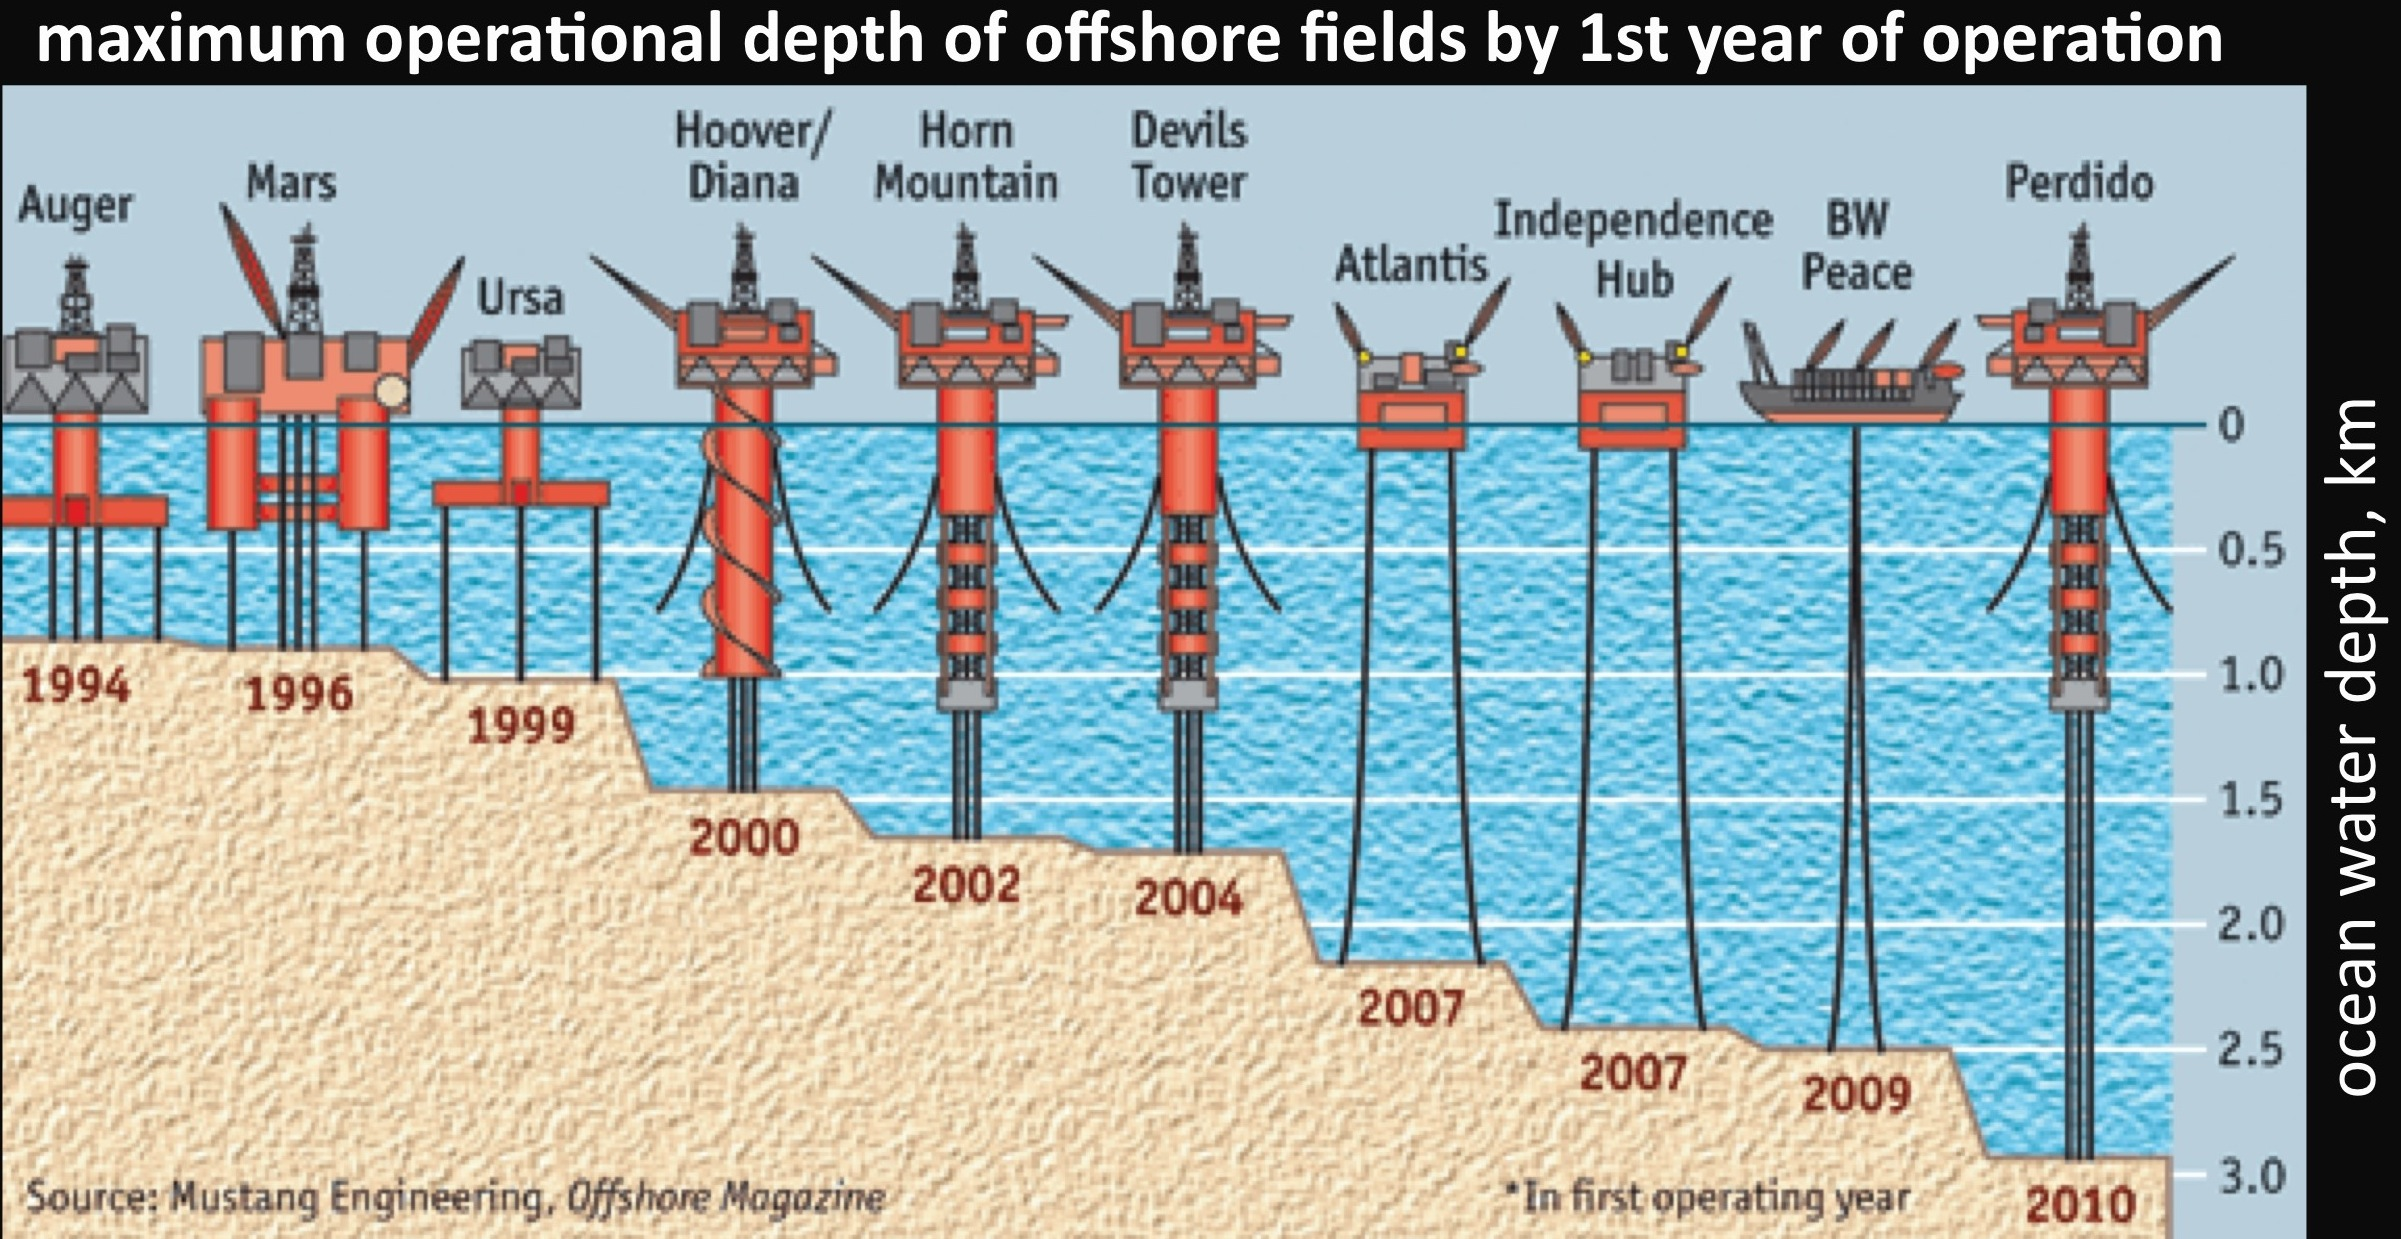 Limiting depth of oil & gas deep ocean prospecting by year, from http://rogerpielkejr.blogspot.com/2010/04/what-technology-can-do.html